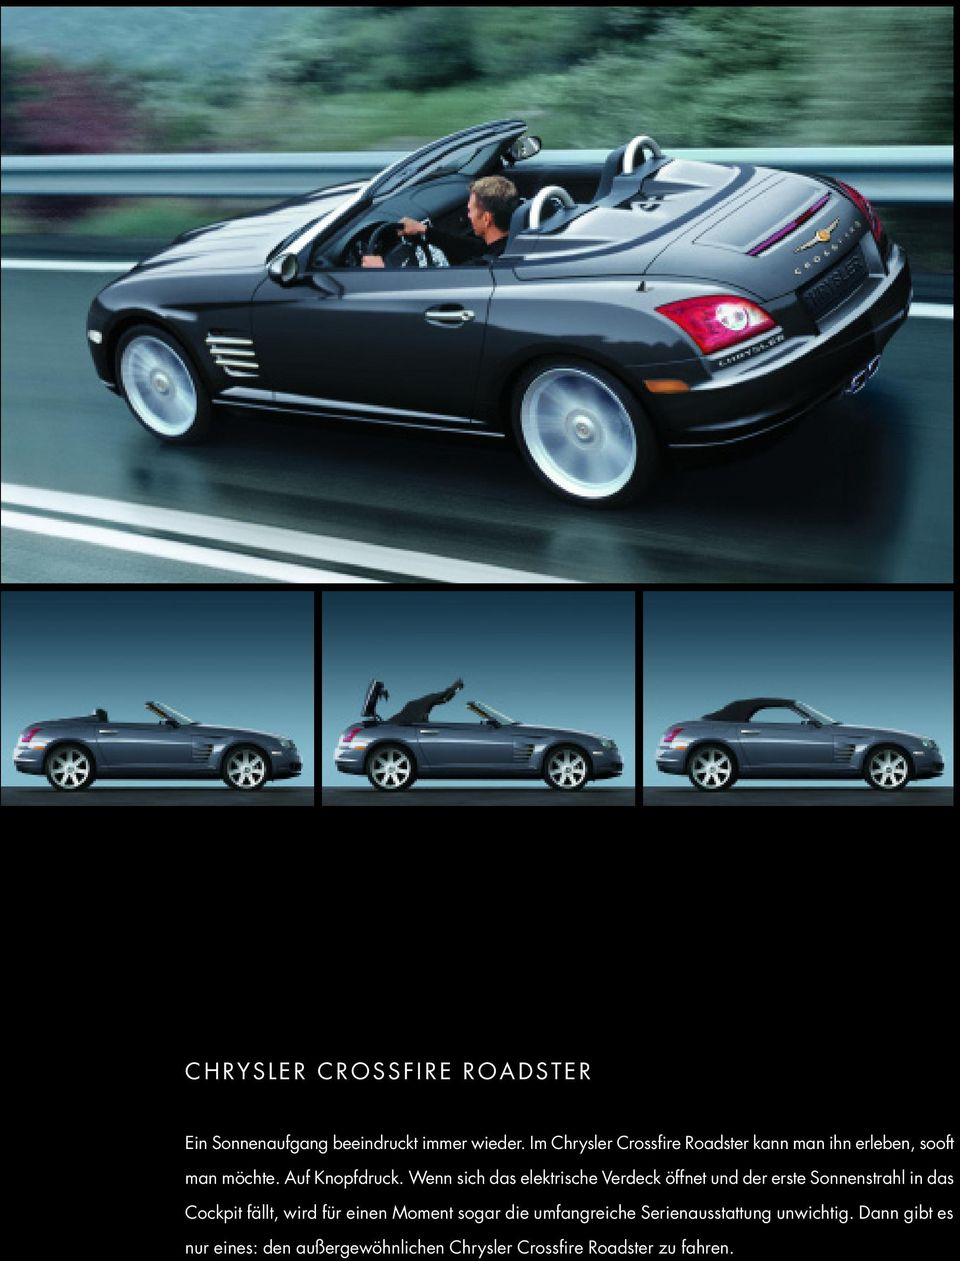 Kofferraummatte Chrysler Crossfire Roadster+Coupe Nr.24